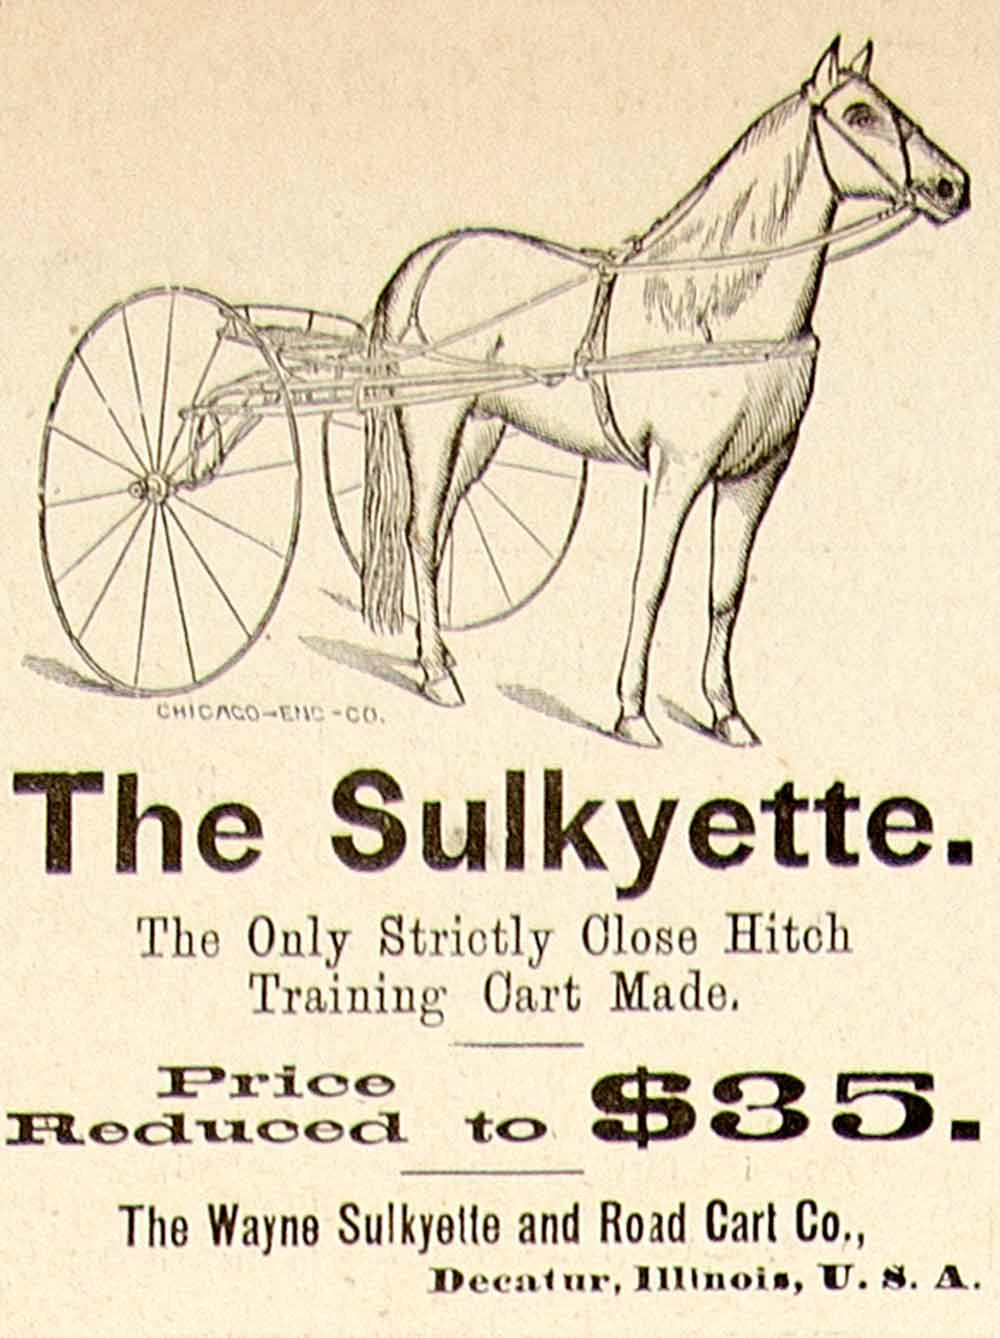 1896 Ad Antique Wayne Sulkyette Horse Road Cart Racing Training Decatur IL YAHB1